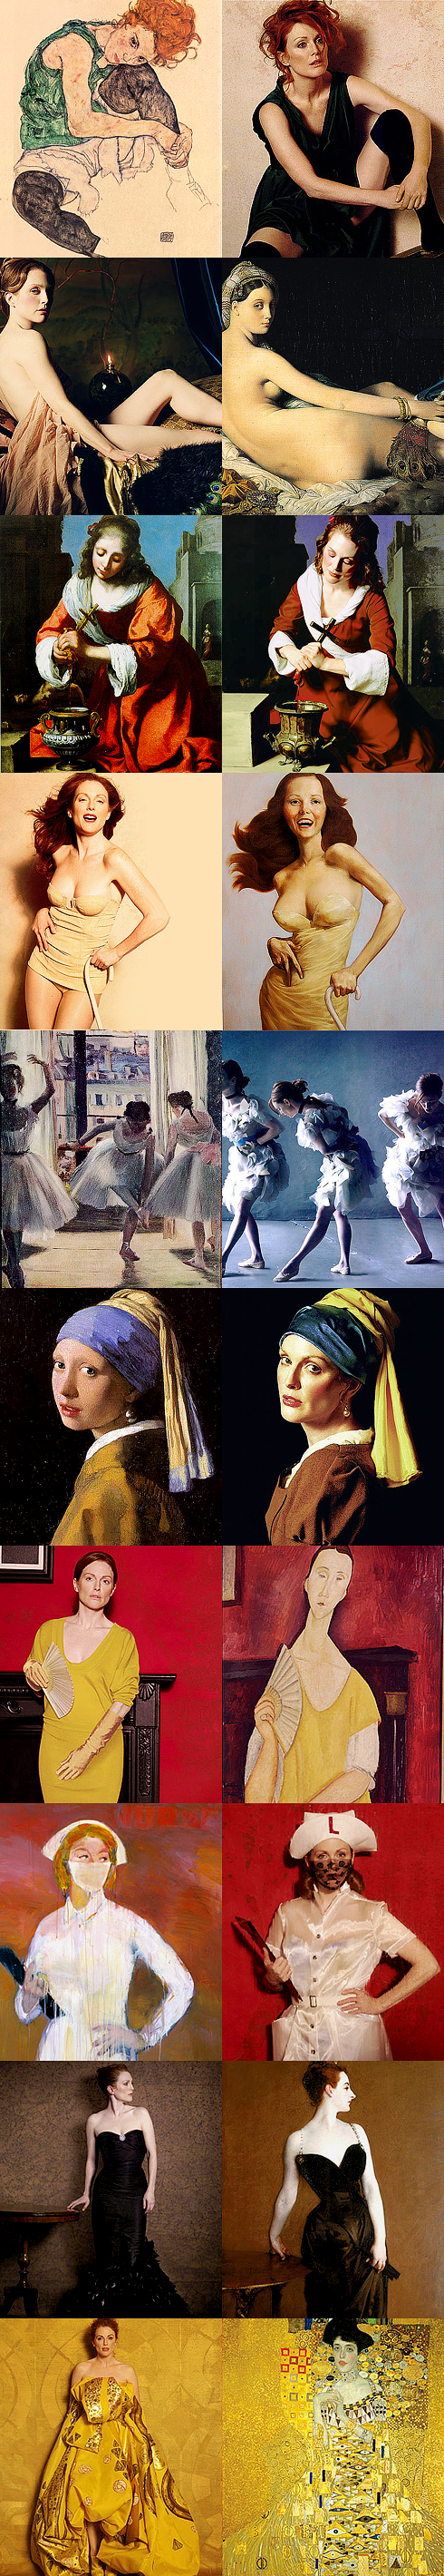 """Julianne Moore as """"Famous Works of Art"""" by Peter Linderbergh for Harper's Bazaar (Seated Woman With Bent Knee by Egon Schiele, La Grande Odalisque by Ingres, Saint Praxidis by Vermeer, The Cripple by John Currin, Les danseuses by Edgar Degas, Madame X by John Singer, Girl with a Pearl Earring by Vermeer, Woman With a Fan by Modigliani, Man Crazy Nurse #3 by Richard Prince, Adele Bloch Bauer I by Gustav Klimt)"""